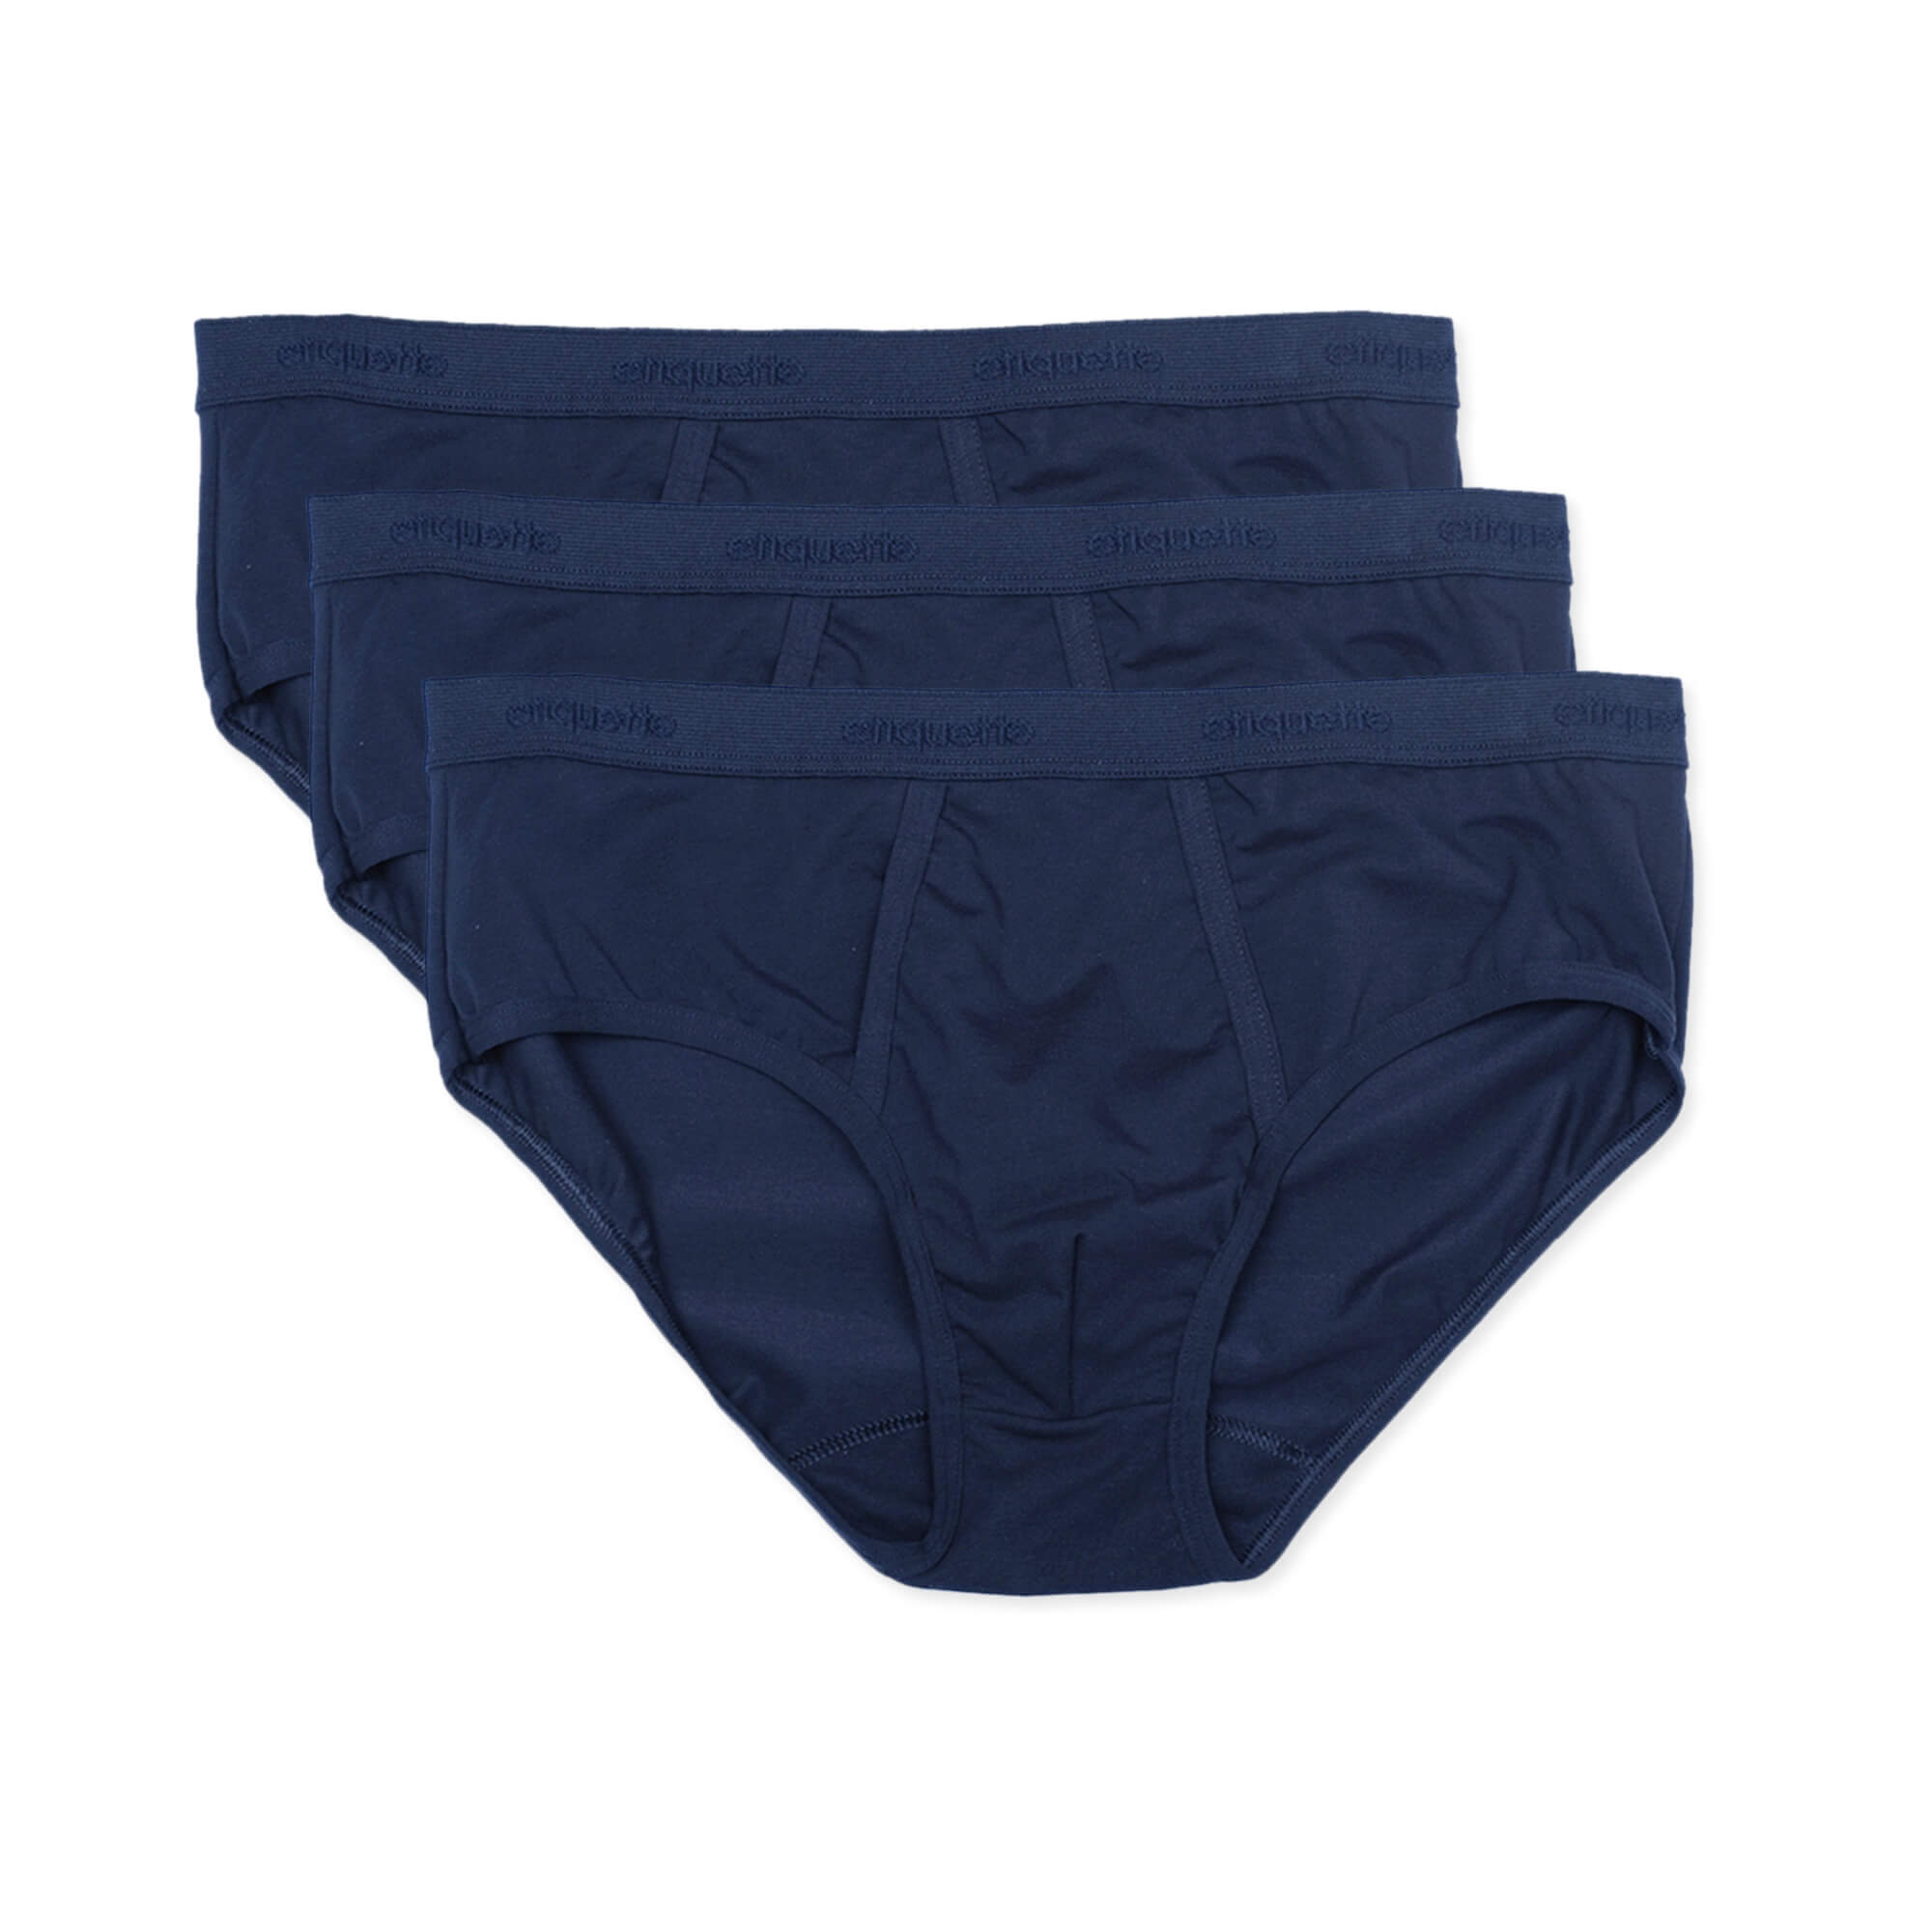 Mens Underwear - Men's Astor Briefs 3 Pack - Dark Blue⎪Etiquette Clothiers